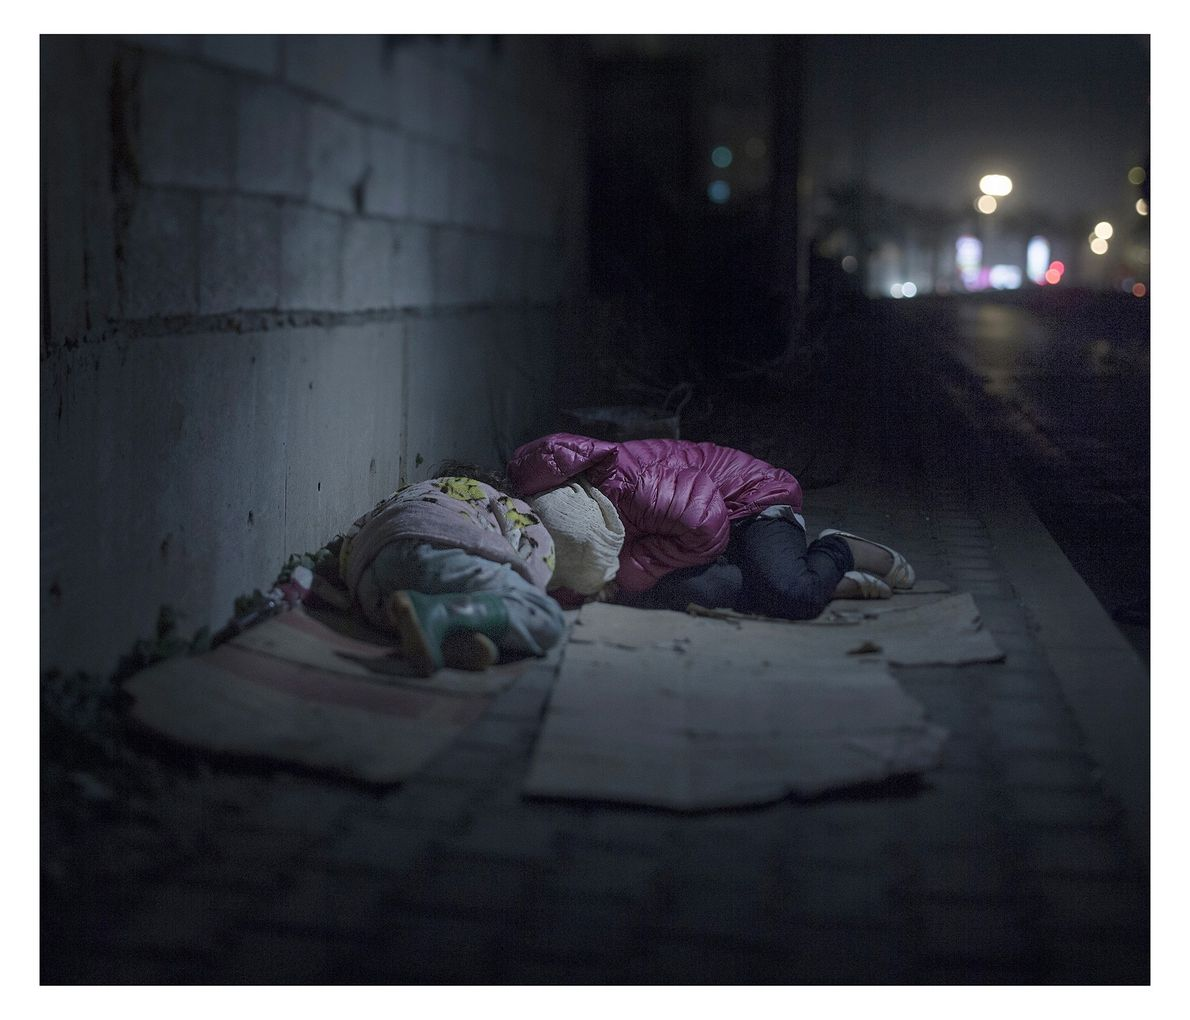 Back home in Damascus, Ralia,7, and Rahaf, 13, lost their mother and brother to a grenade. ...